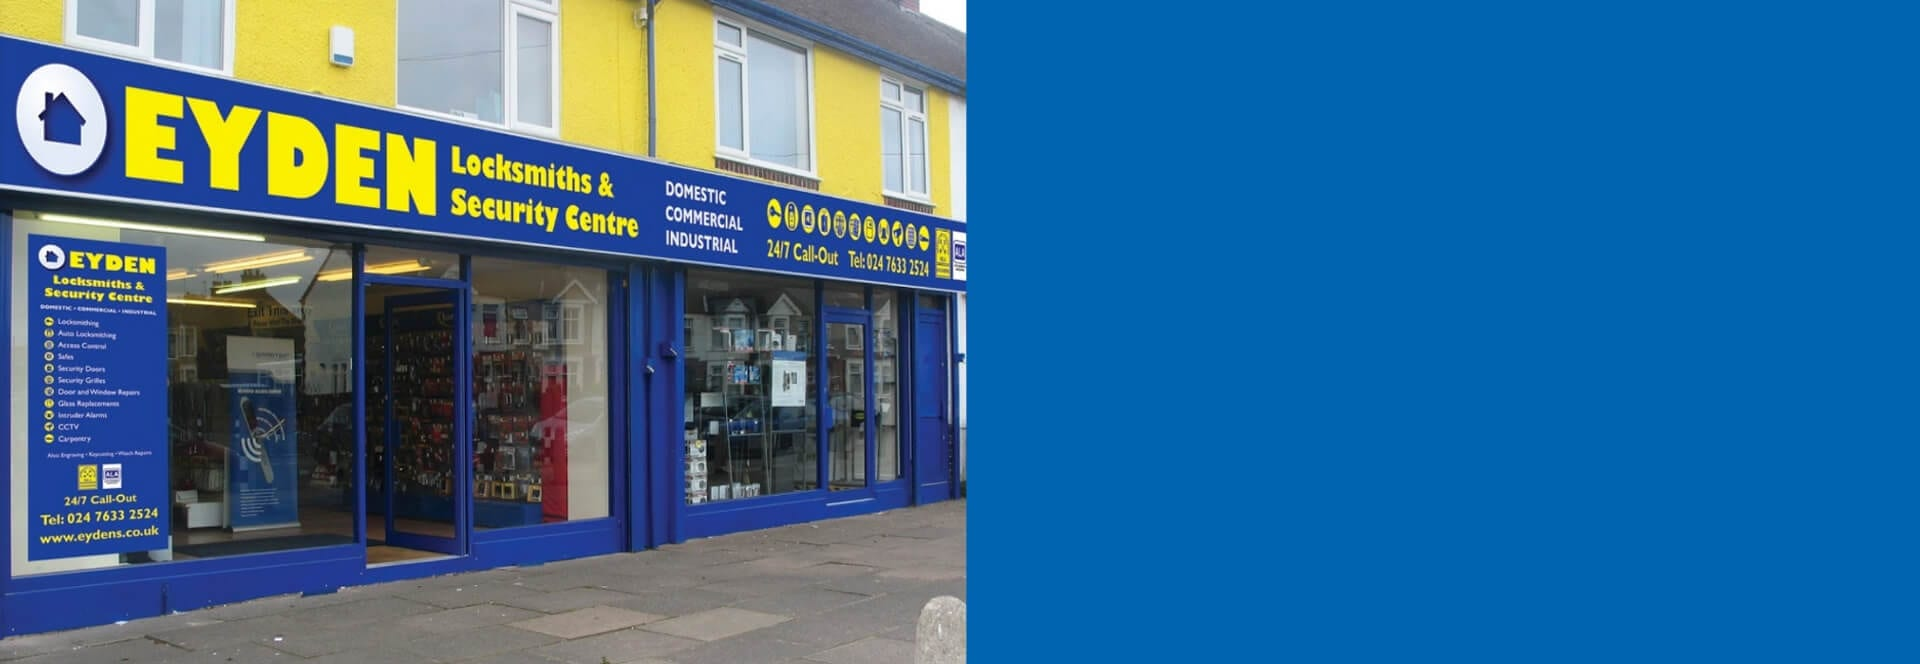 Shop front picture of Eyden Locksmith and security centre in Coventry SLIDER 2 1